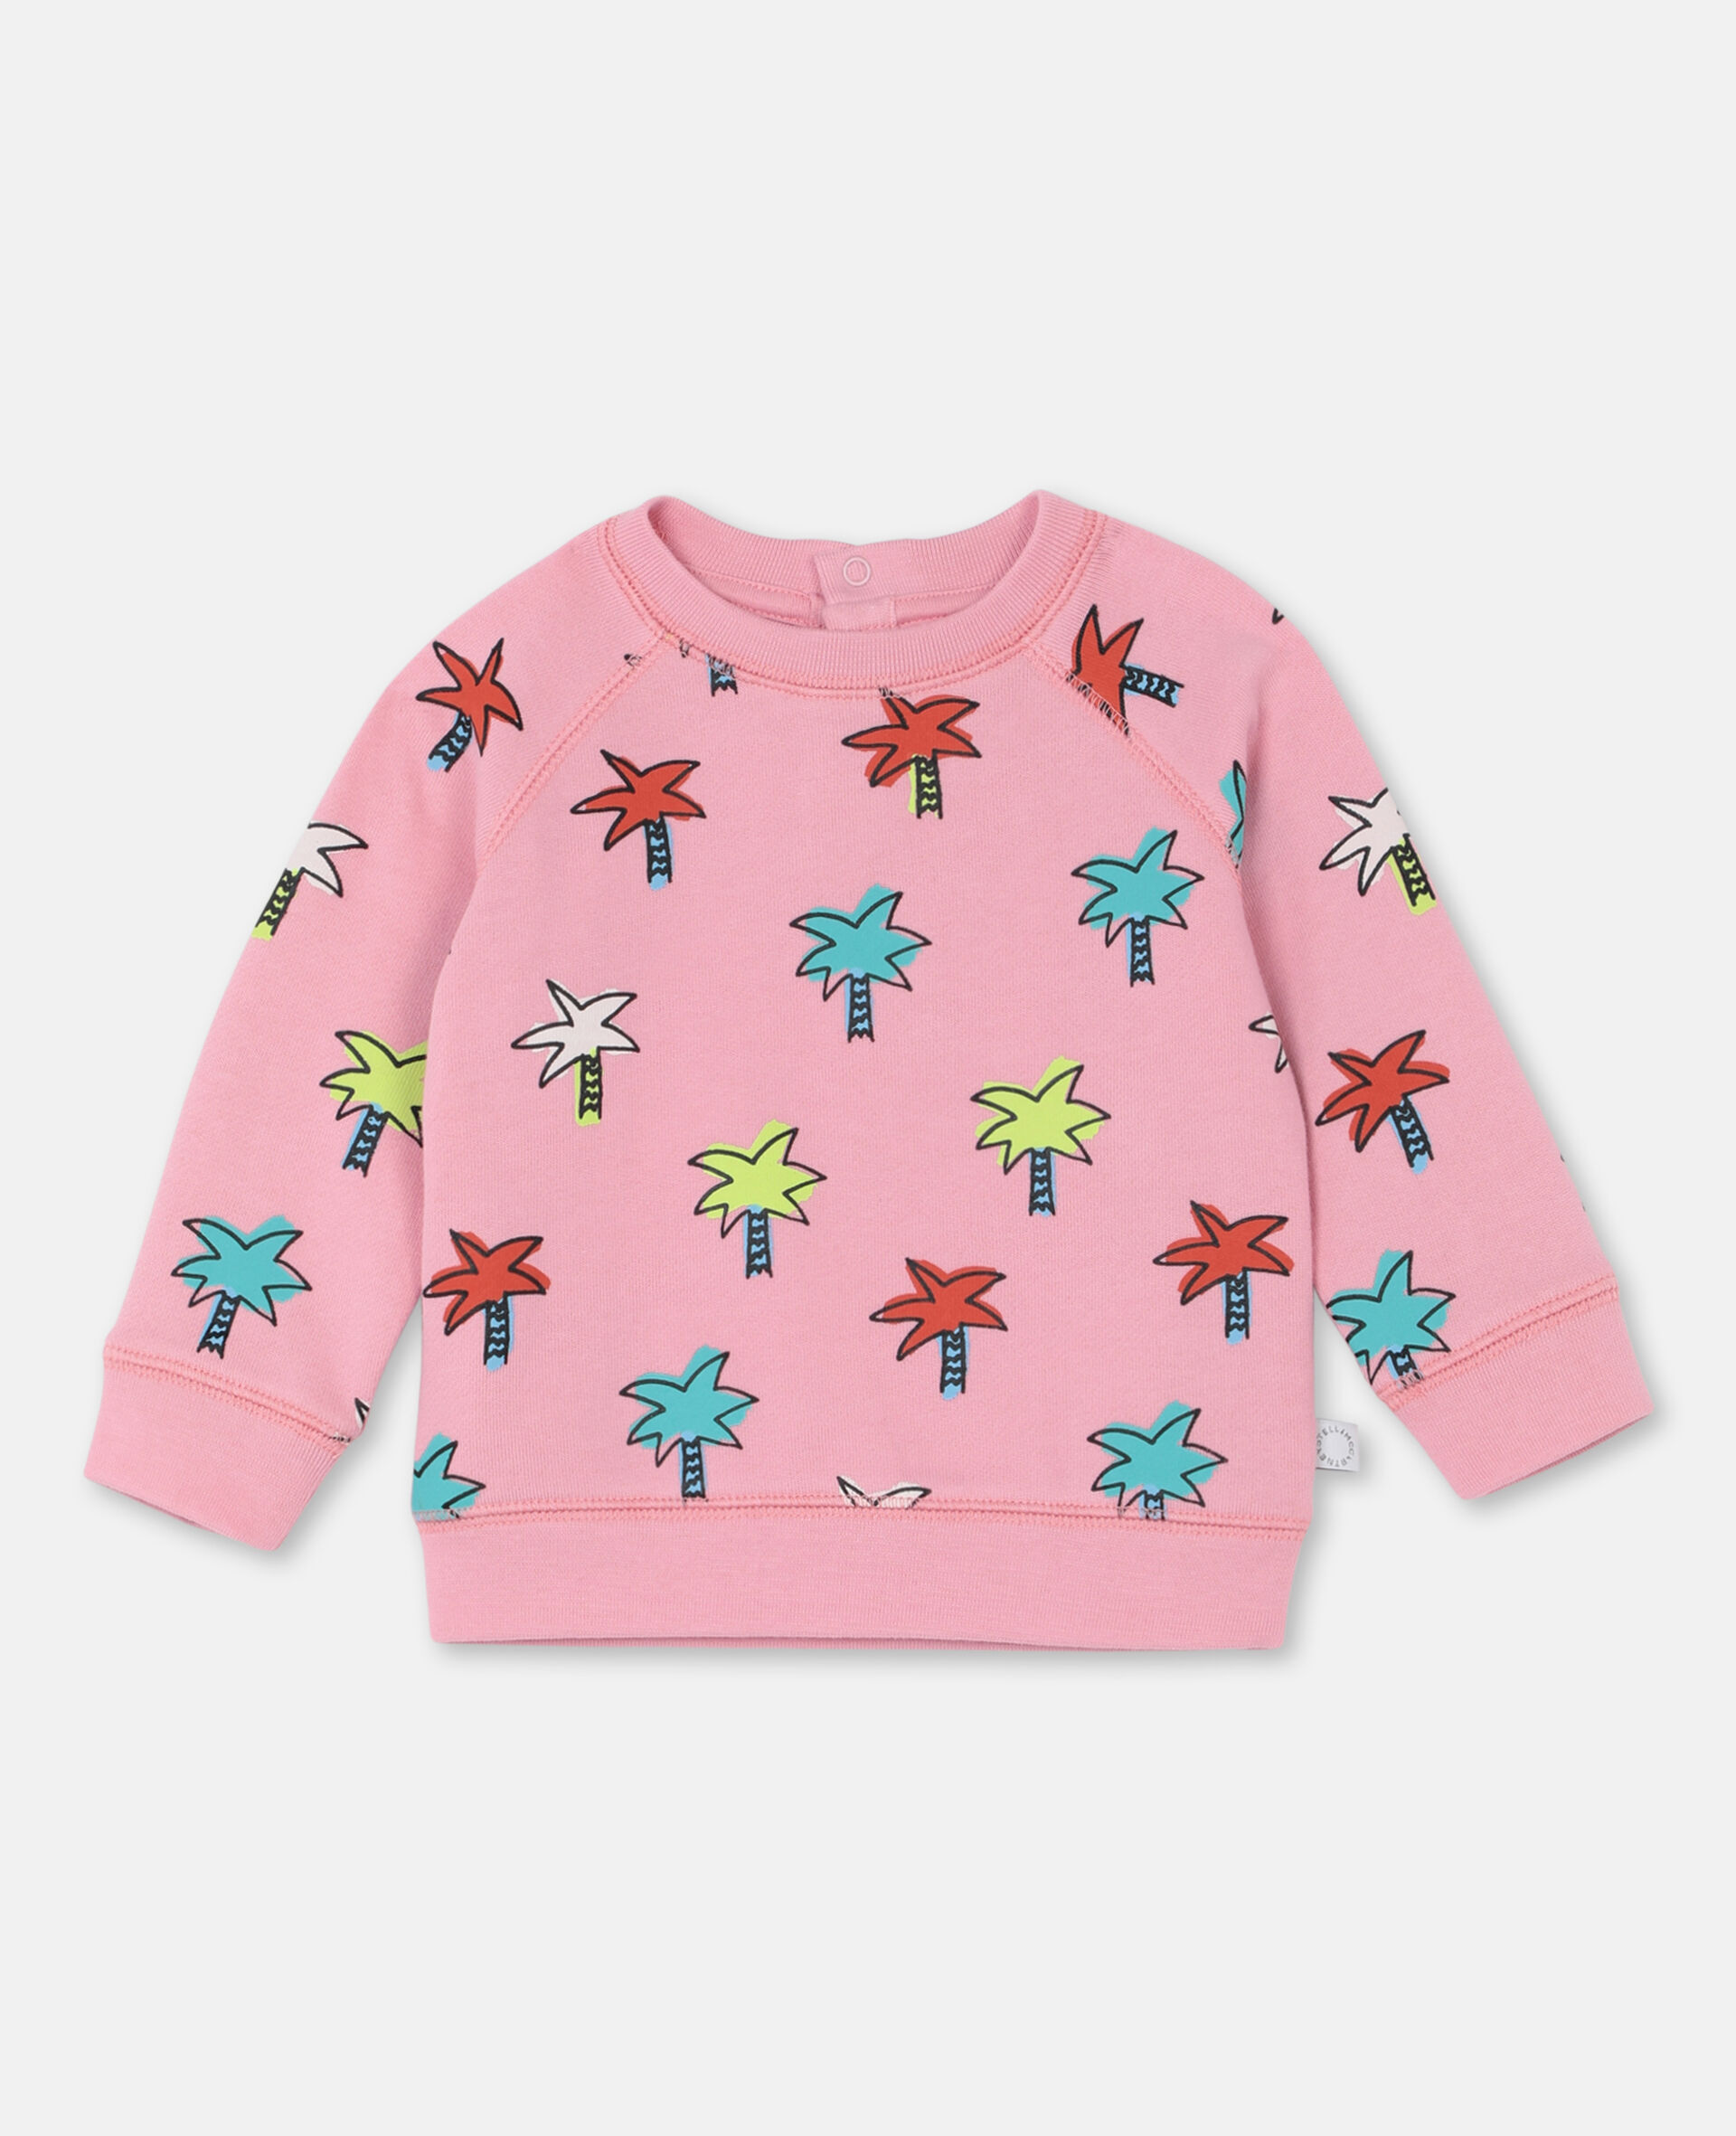 Doodly Palms Cotton Sweatshirt -Pink-large image number 0